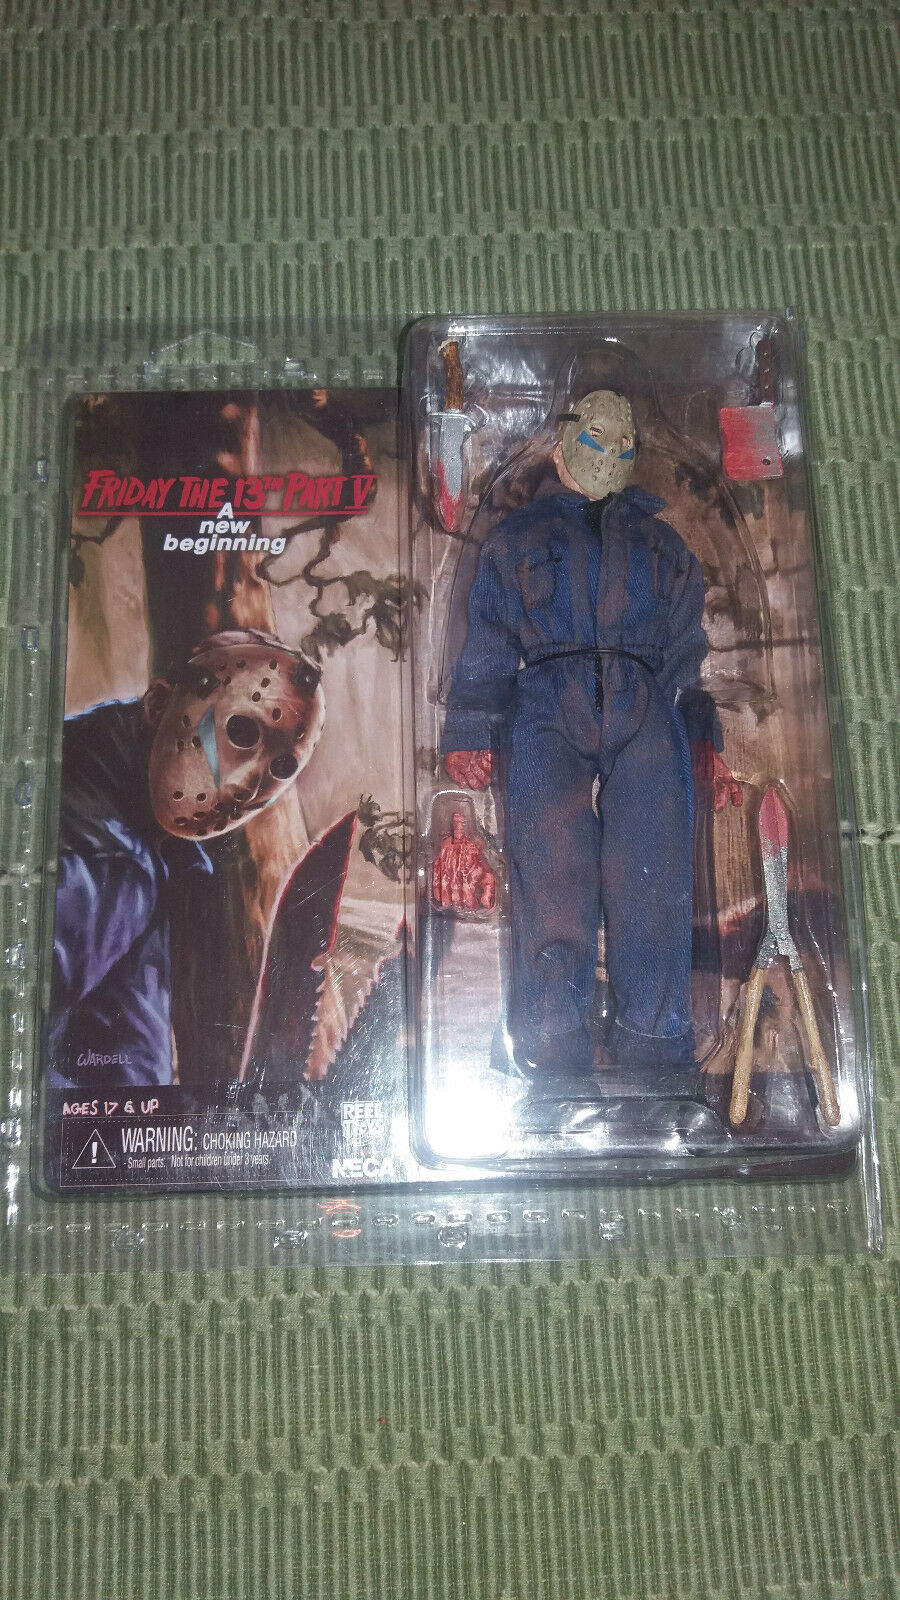 Friday The 13th Figura de juguete nuevo comienzo V Neca Mego Paño Retro Jason Voorhees